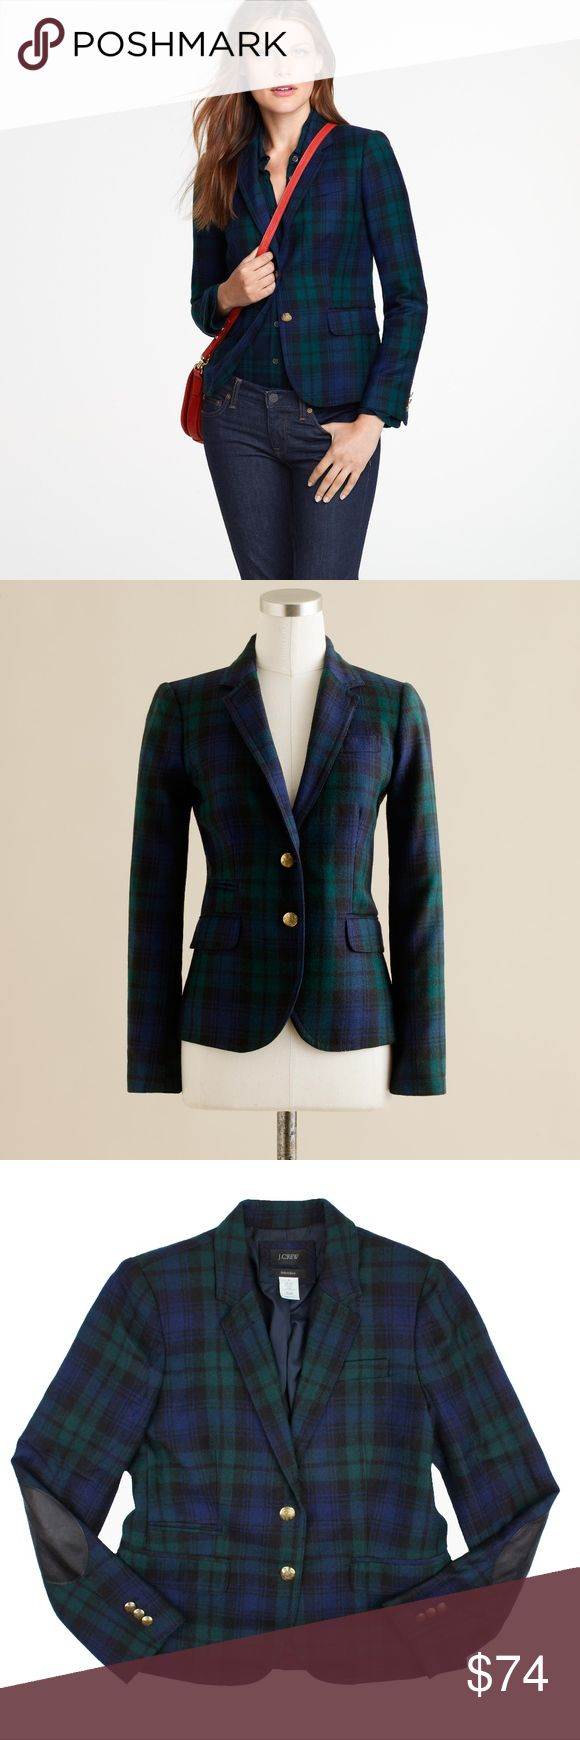 "JCREW Schoolboy Blazer Jacket in Blackwatch Tartan Size - 6  This black watch tartan plaid (a navy blue, dark green and black plaid) schoolboy blazer from JCREW is in excellent condition. It features gold toned button closures, front pockets and black leather-like elbow patches. Fully lined.  100% Wool.  Measures: Bust: 38"" Total Length: 23"" Sleeves: 24"" J. Crew Jackets & Coats Blazers"